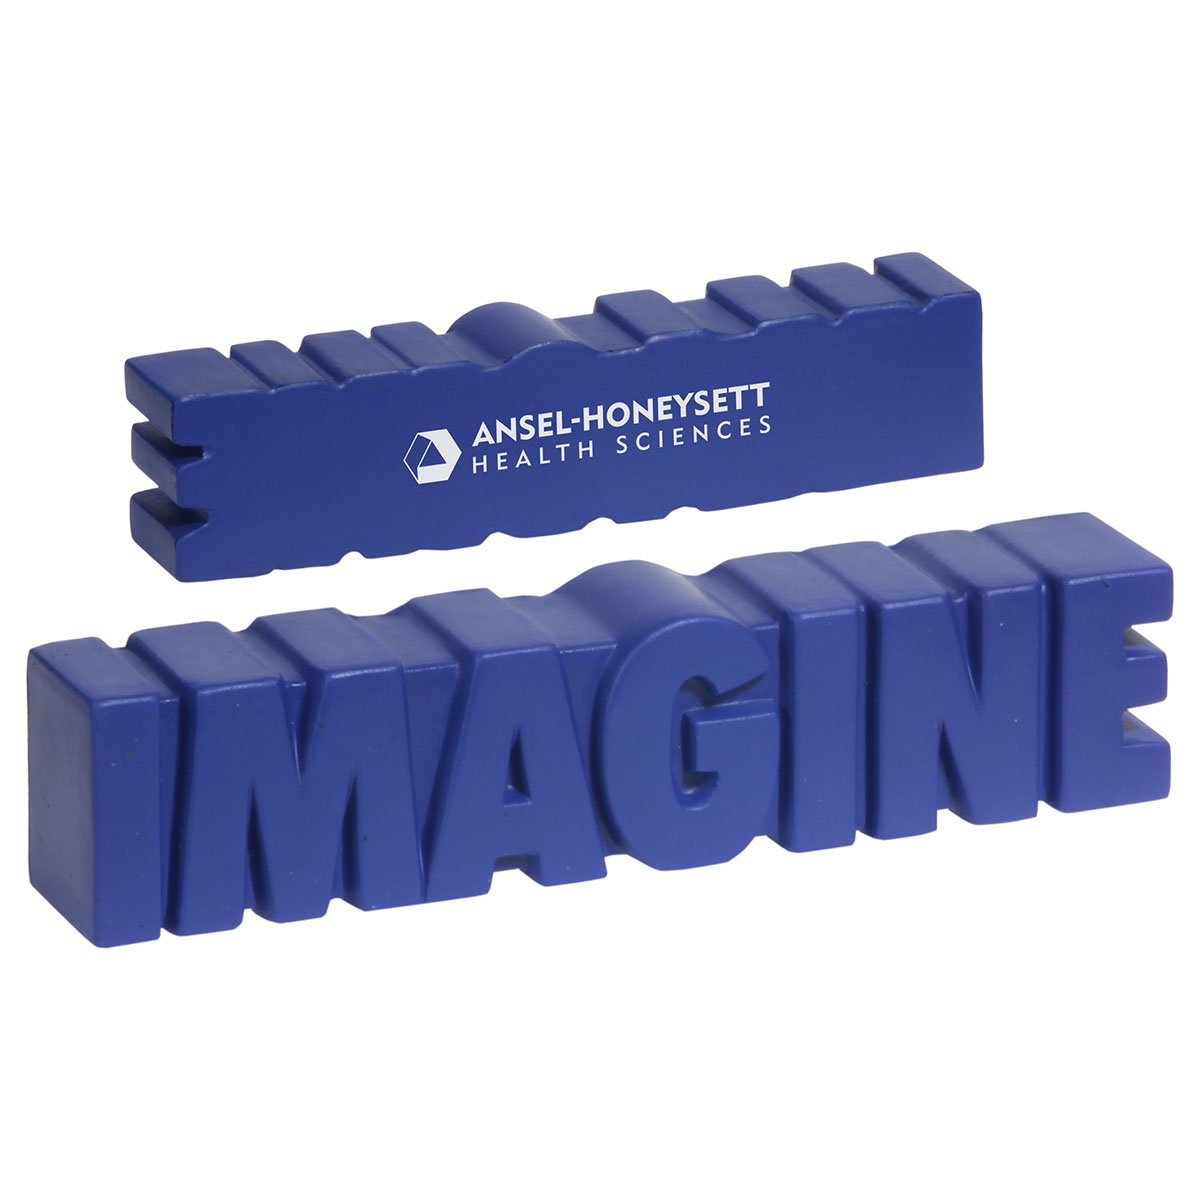 Imagine Word Stress Reliever, LGS-IM13 - 1 Colour Imprint